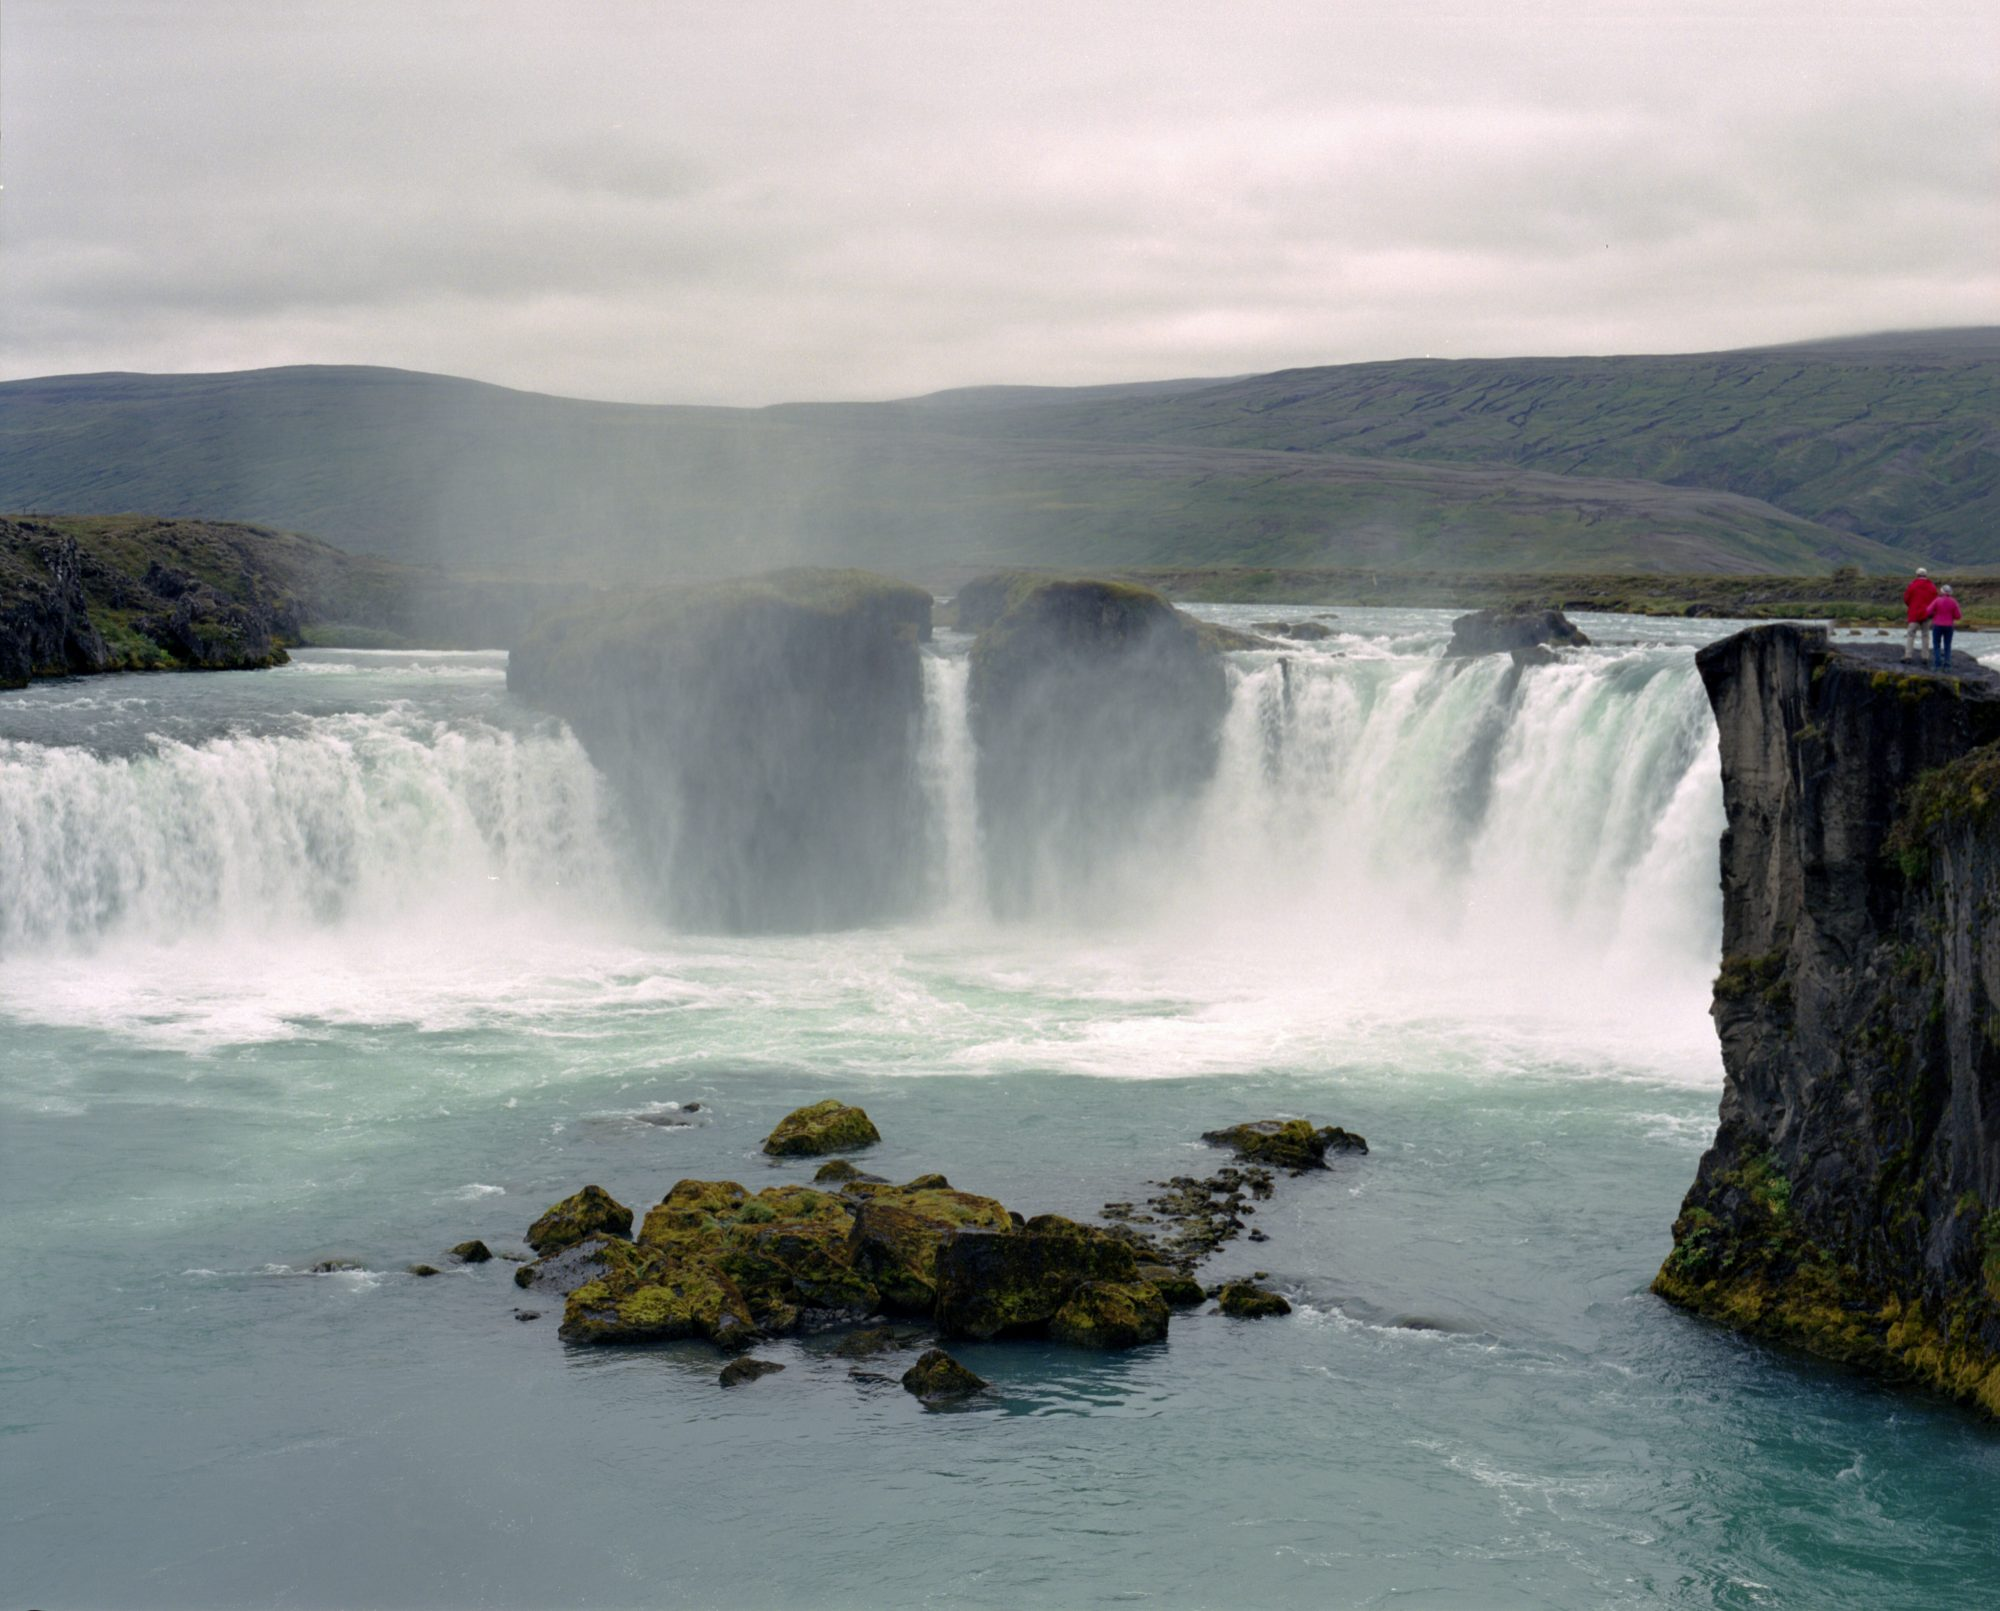 VIDEOS: Three Men Kayak Off Icelandic Waterfall For The Second Time